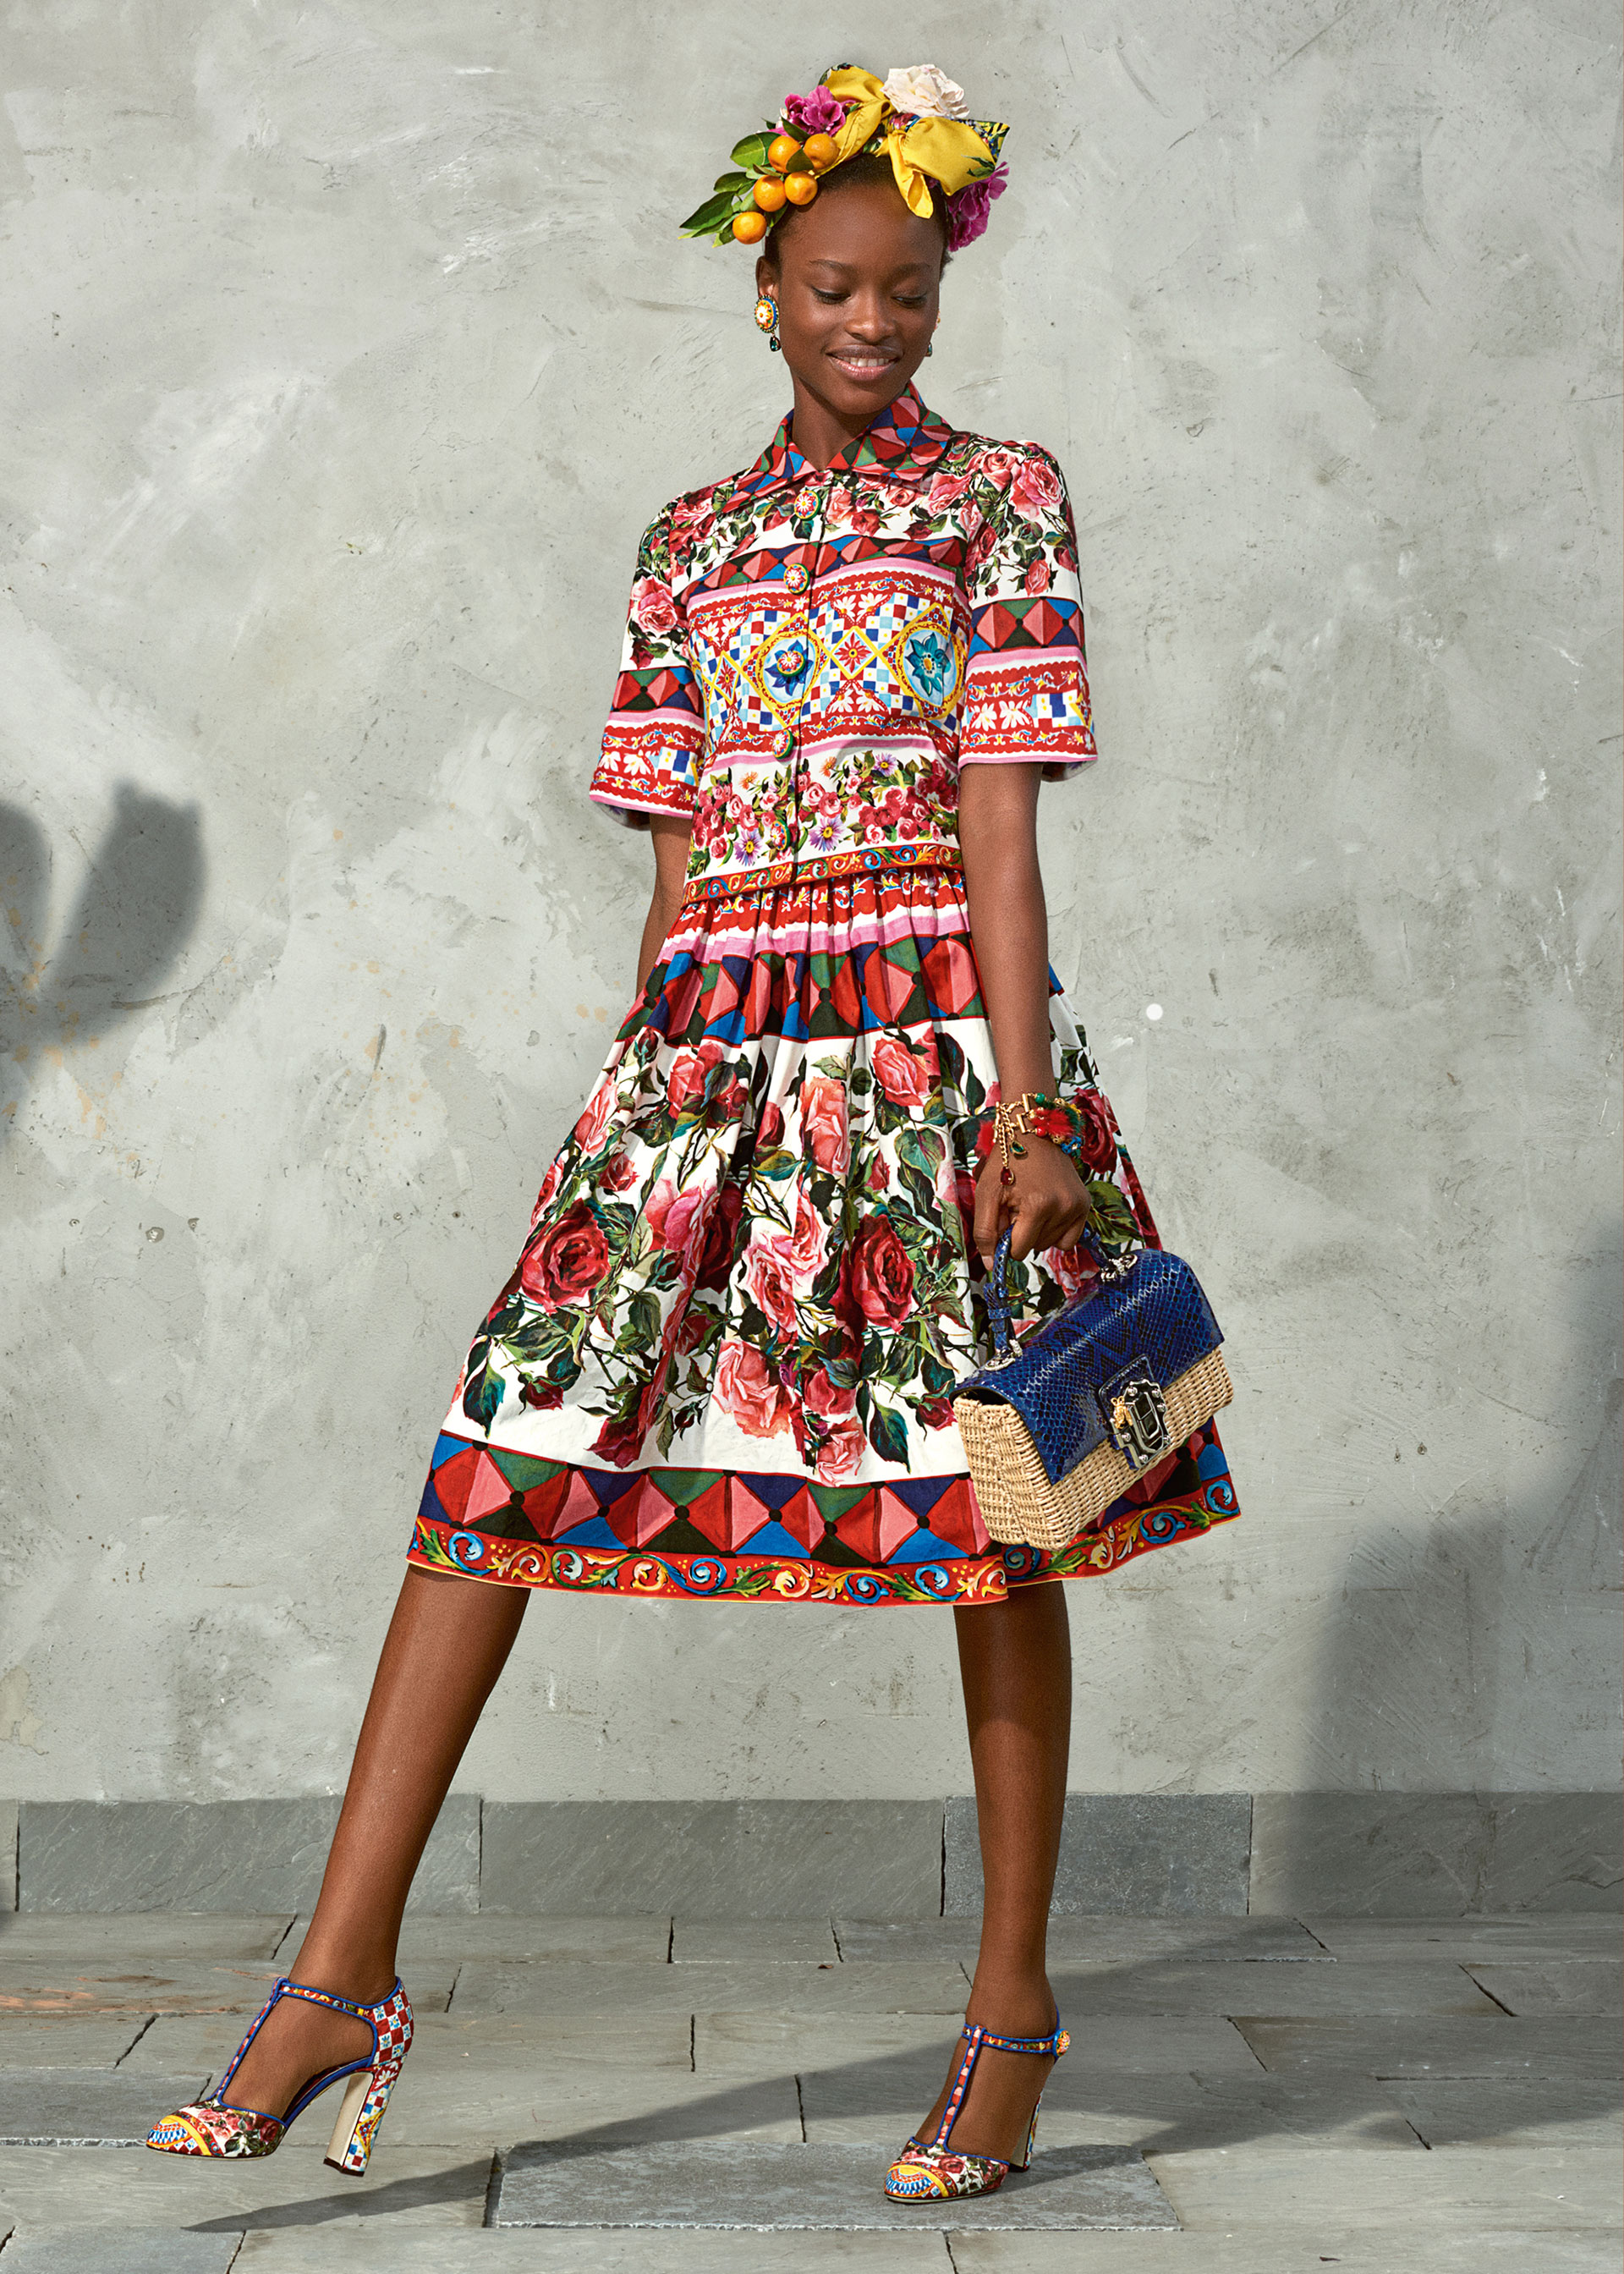 dolce and gabbana summer 2017 woman collection 98 - Dolce & Gabbana/Spring Summer 2017 Collection/ Mambo